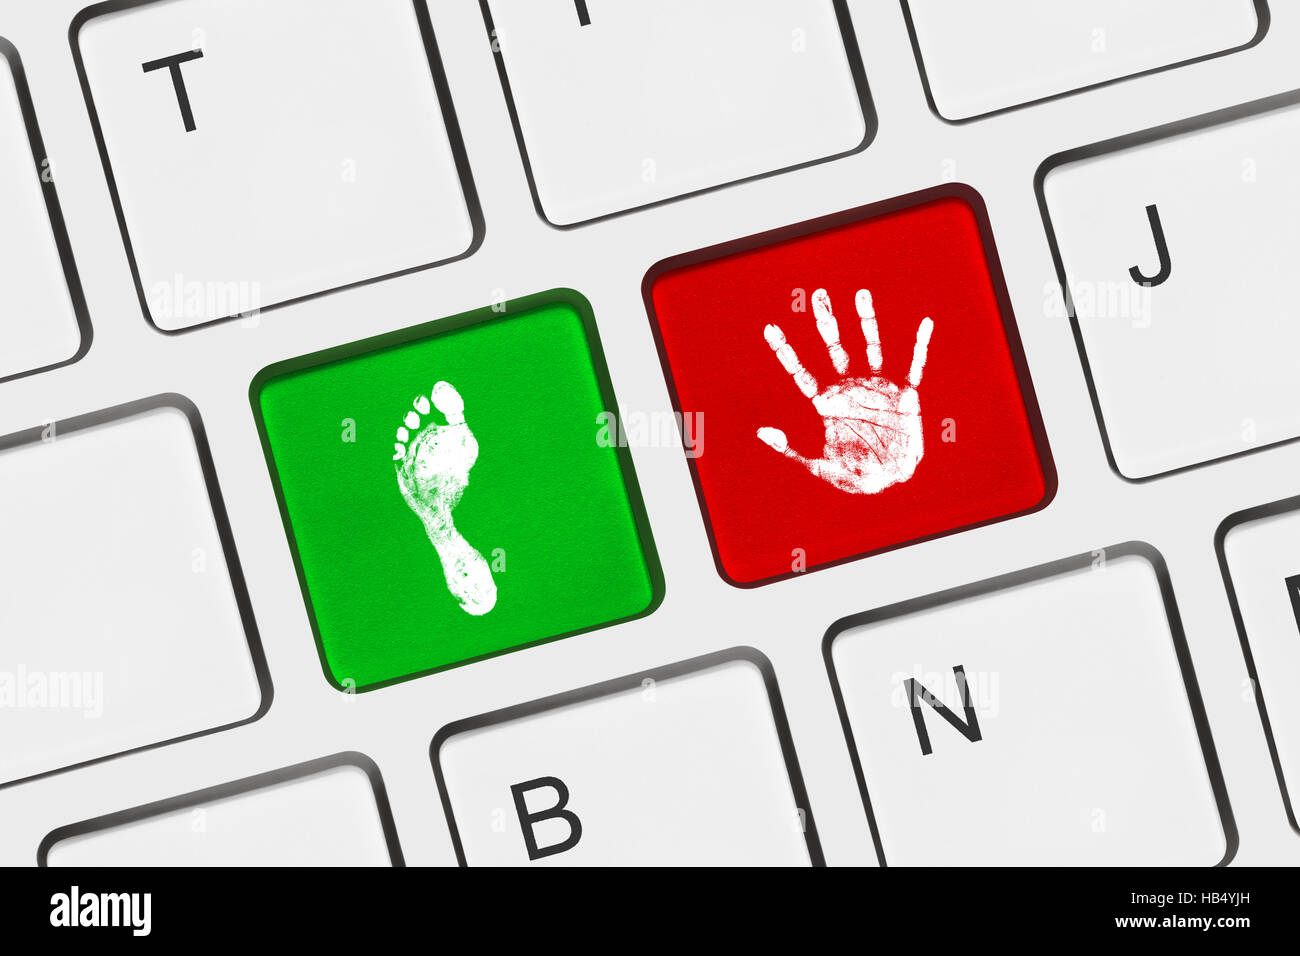 printout of hand and foot on computer keys stock photo 127343289